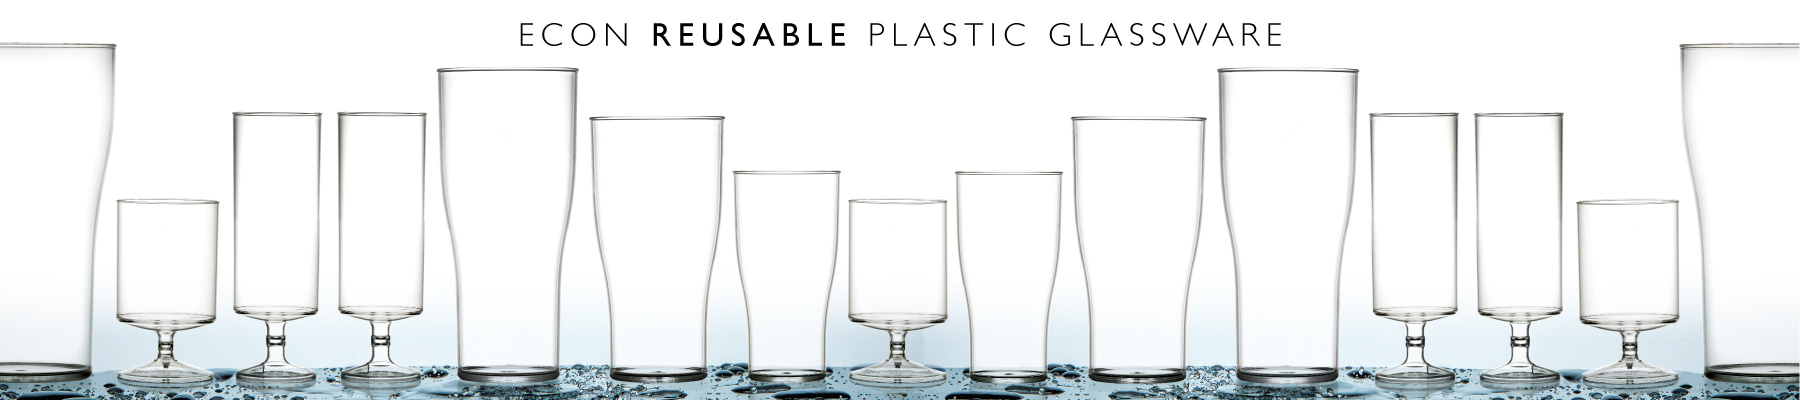 Plastic-Glassware-Supplies-Hampshire